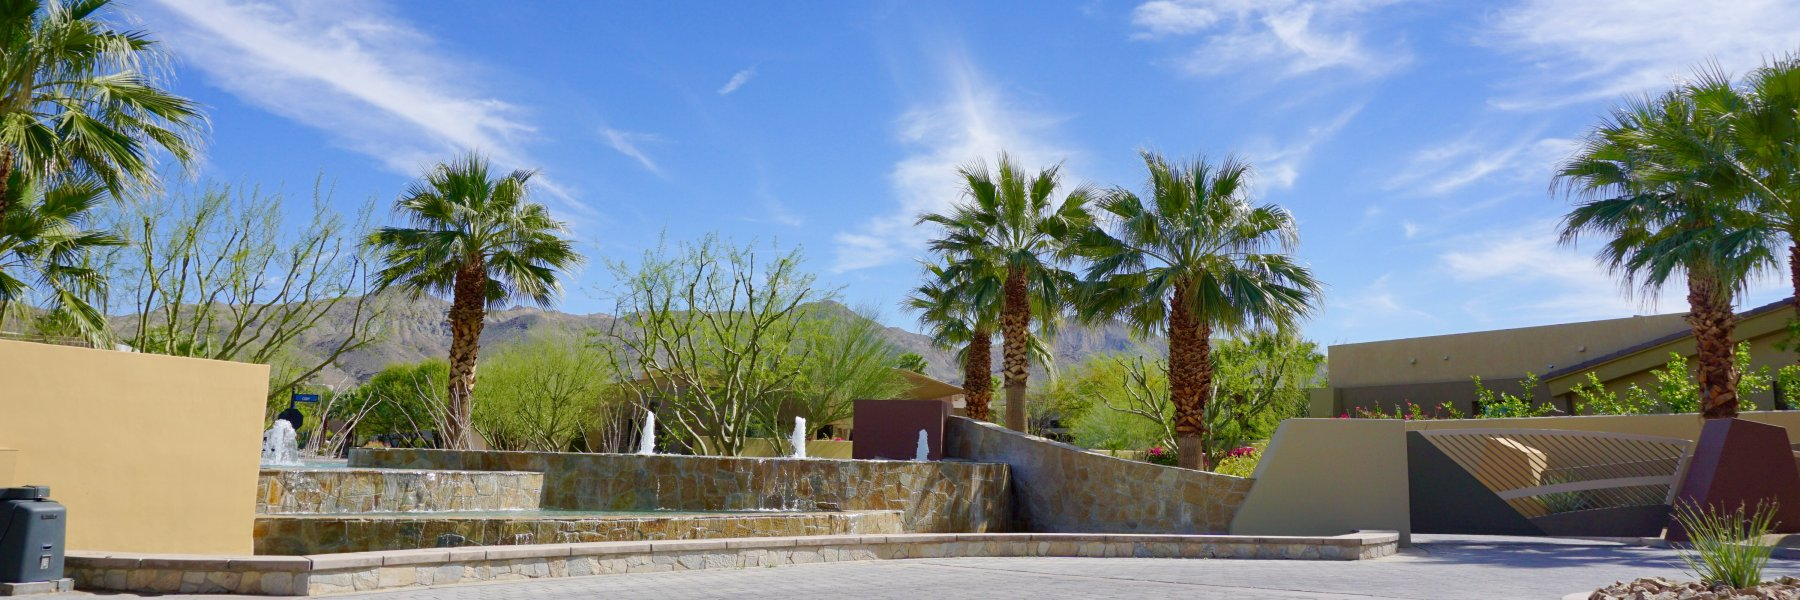 Alta is a community of homes in Palm Springs California